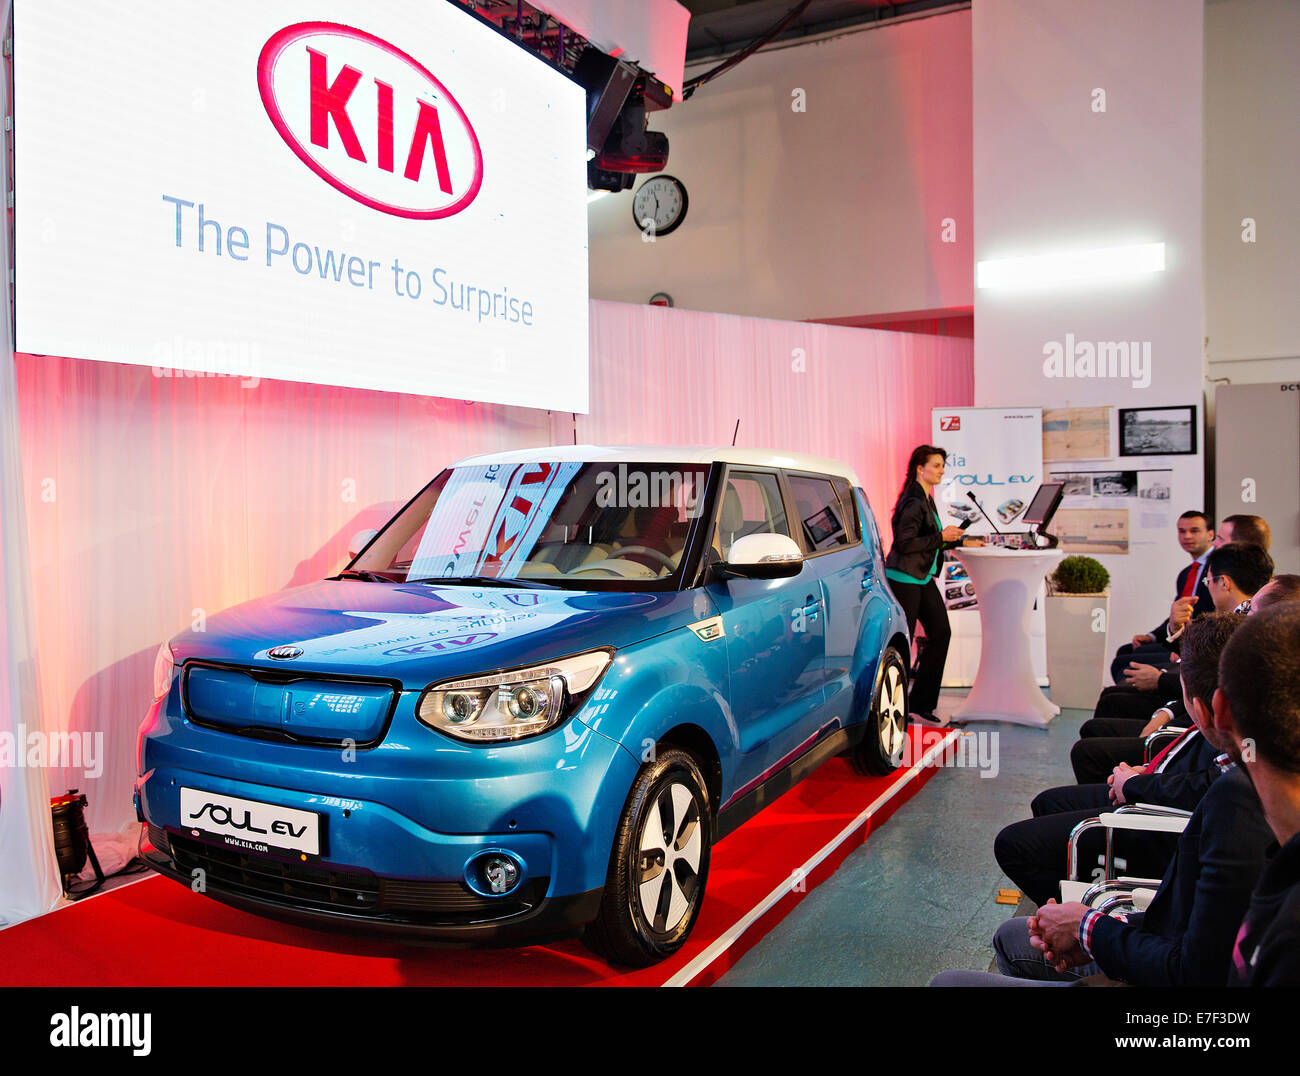 Korean automaker Kia Motors presented electric version of Kia Soul EV in Prague, Czech Republic, September 12, 2014. - Stock Image